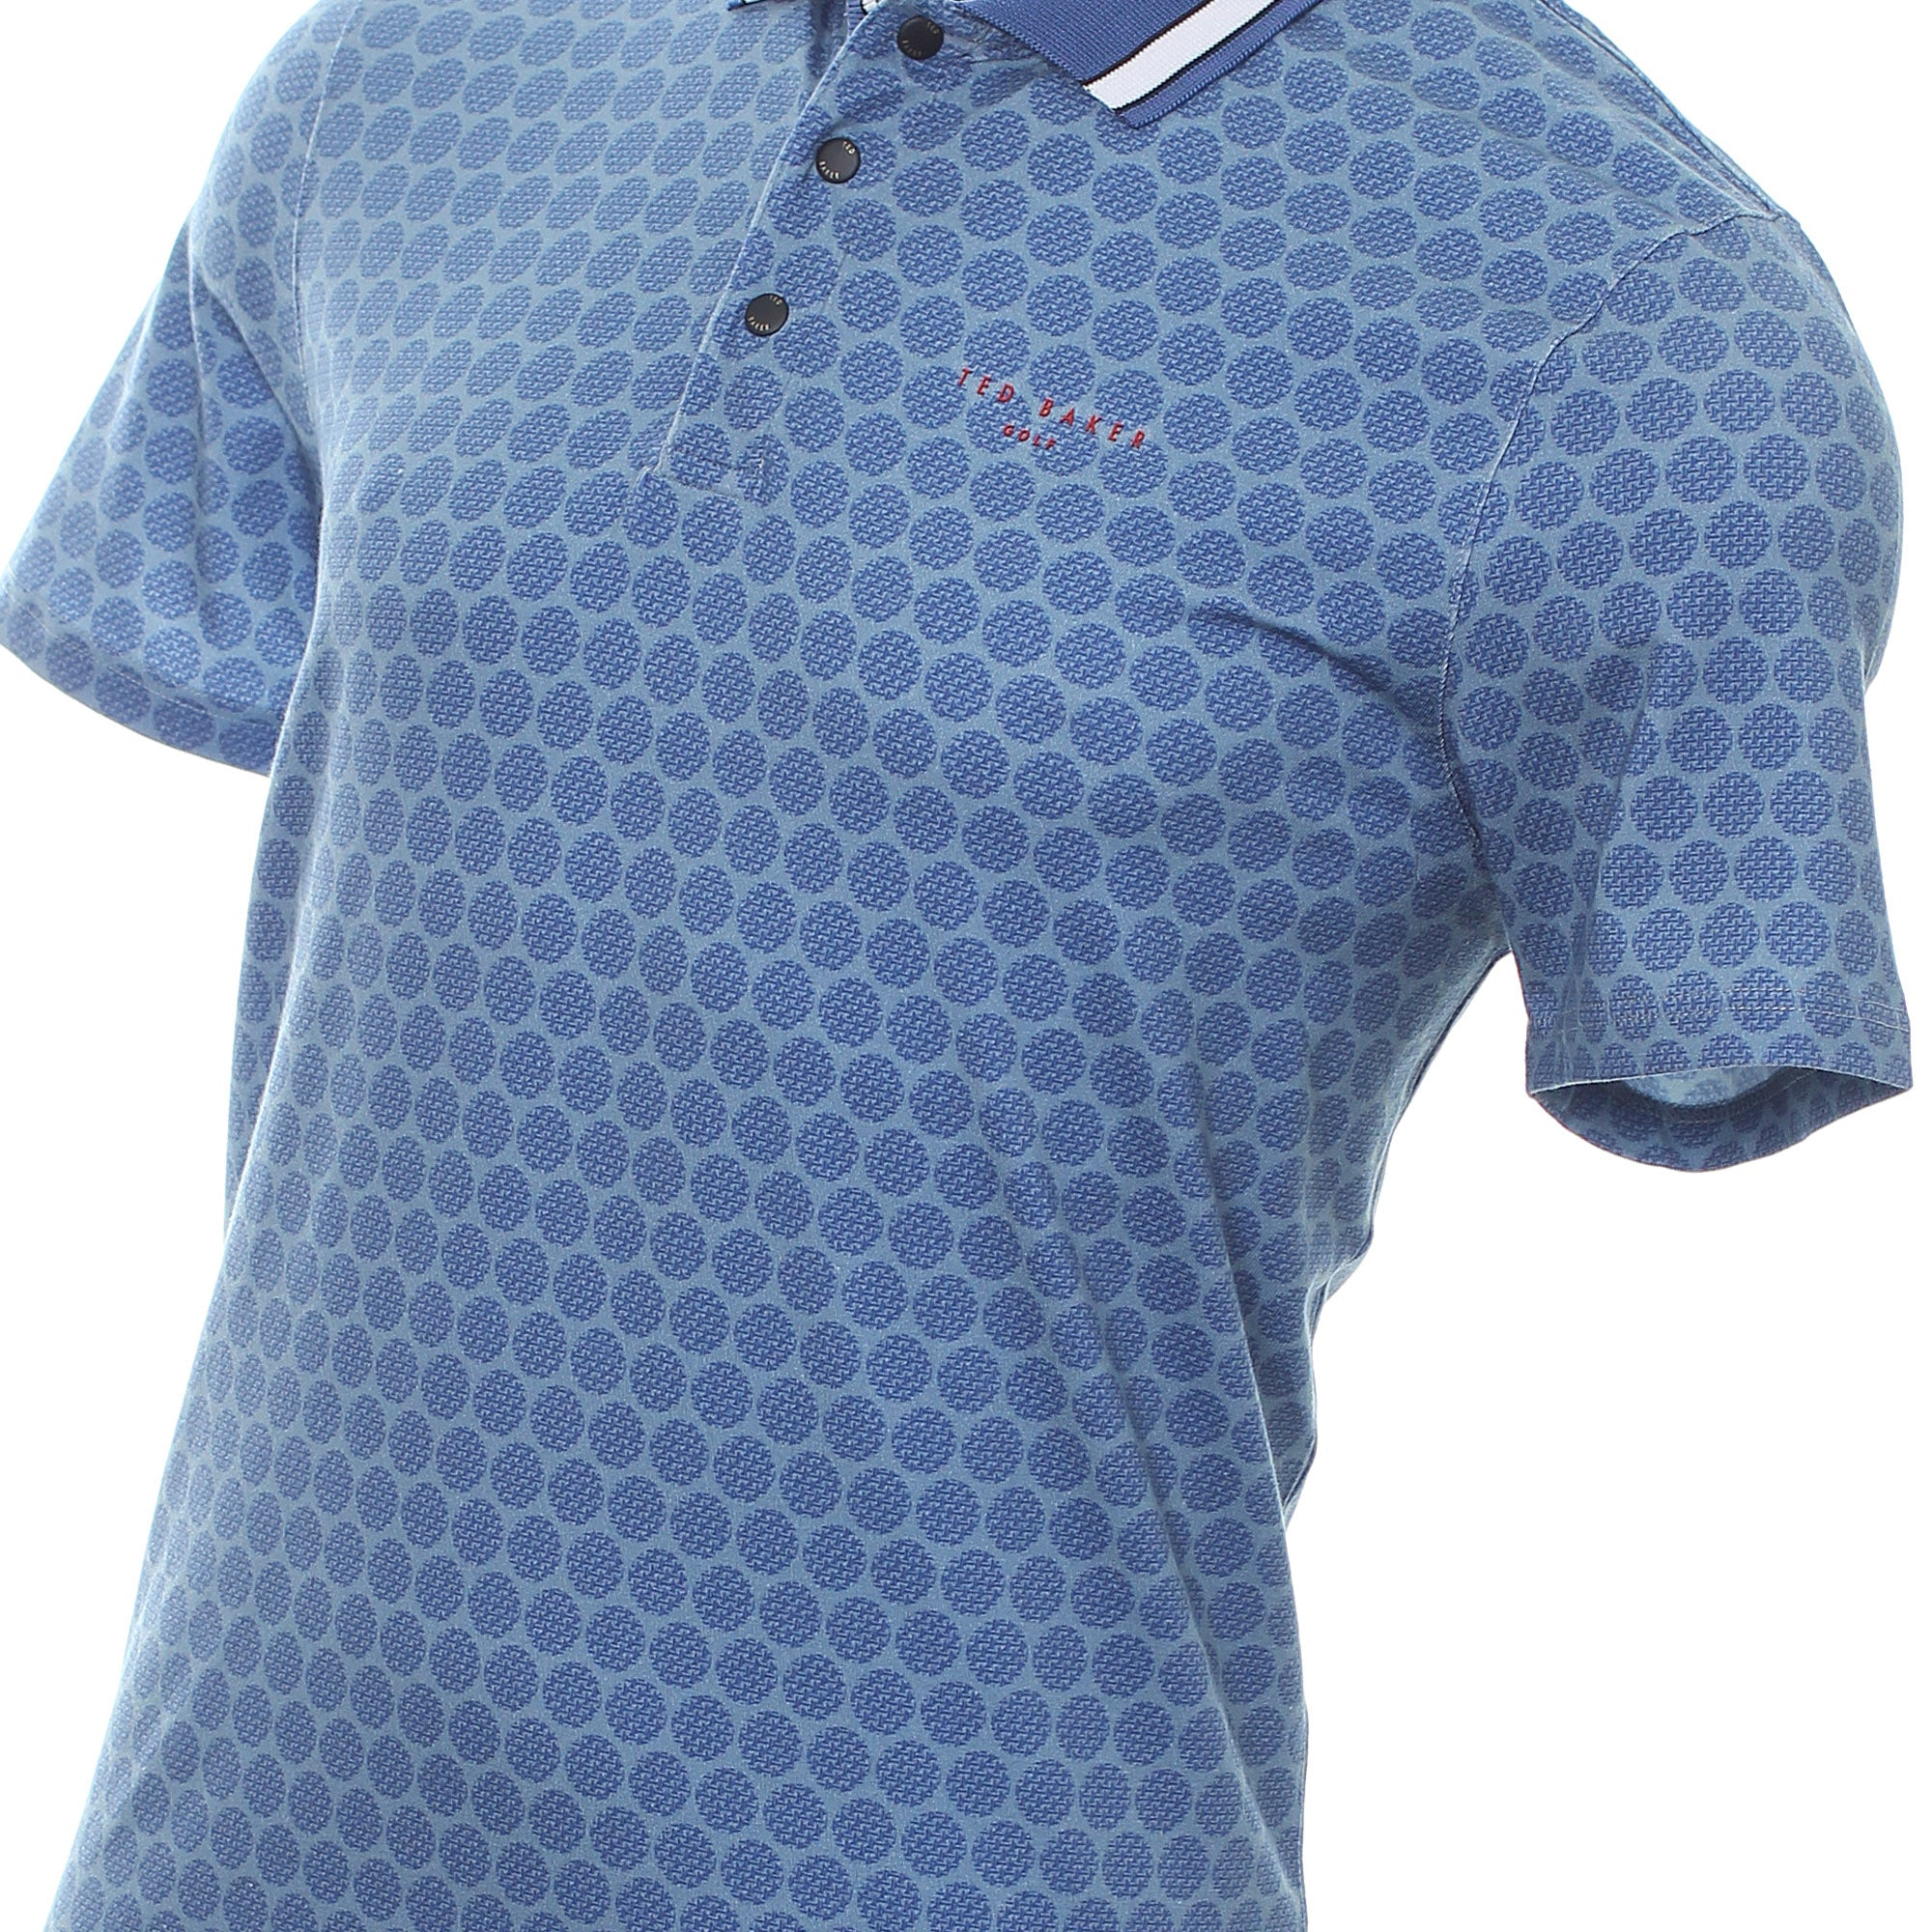 Ted Baker Aeros Golf Shirt 141330